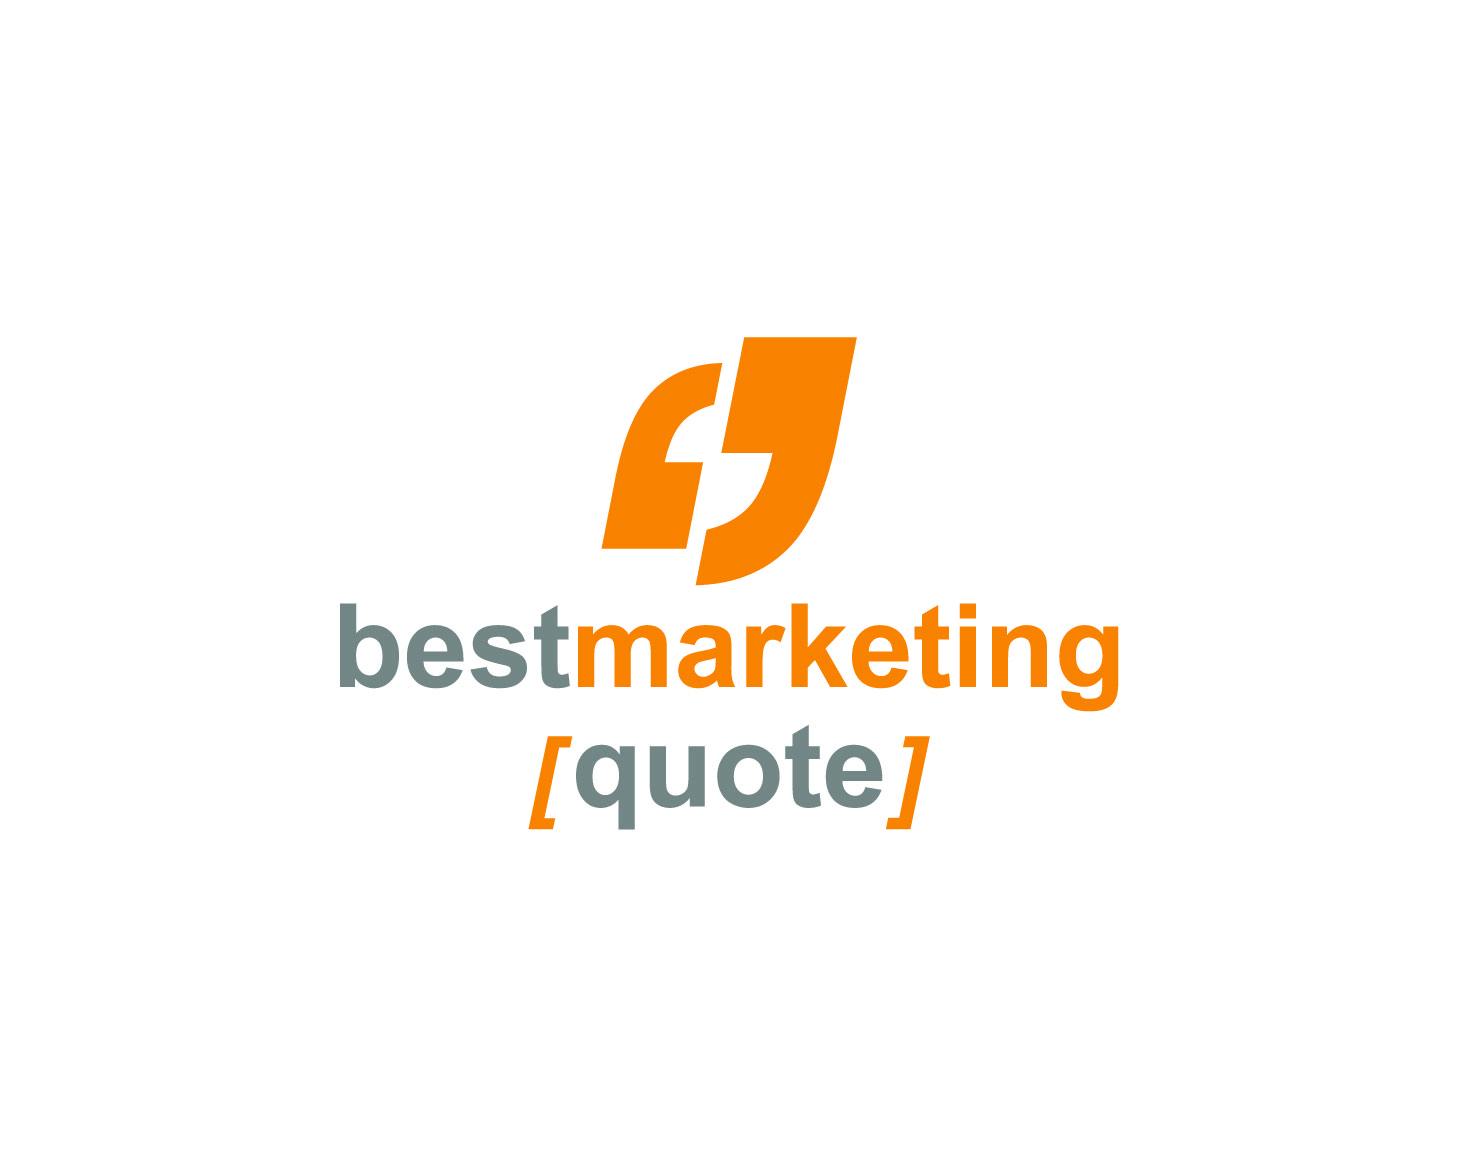 Marketing Logo Design For Best Marketing Quotes By Onesource